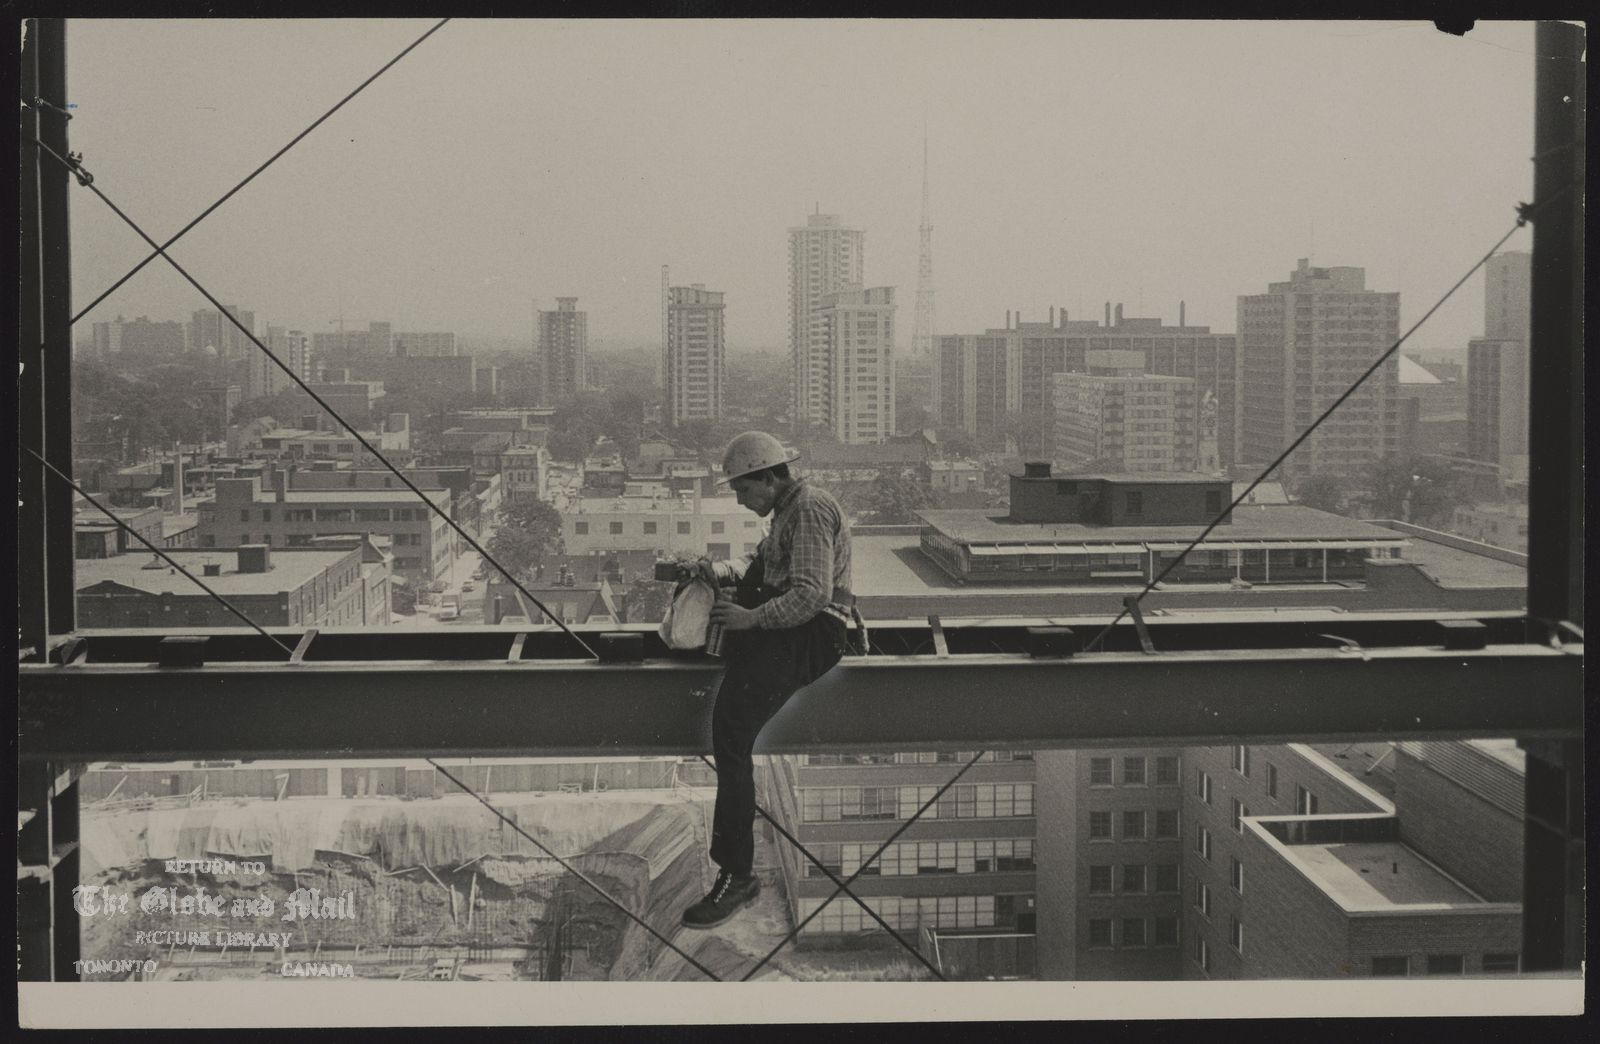 CONSTRUCTION Perched comfortably on a girder with a magnificent view of Toronto around him, steel worker Walter Stein, a commuter from Keswick, enjoys solitary lunch on rapidly rising Queen's Park project. Four towers will house 9,000 civil servants working in scattered location in Toronto.